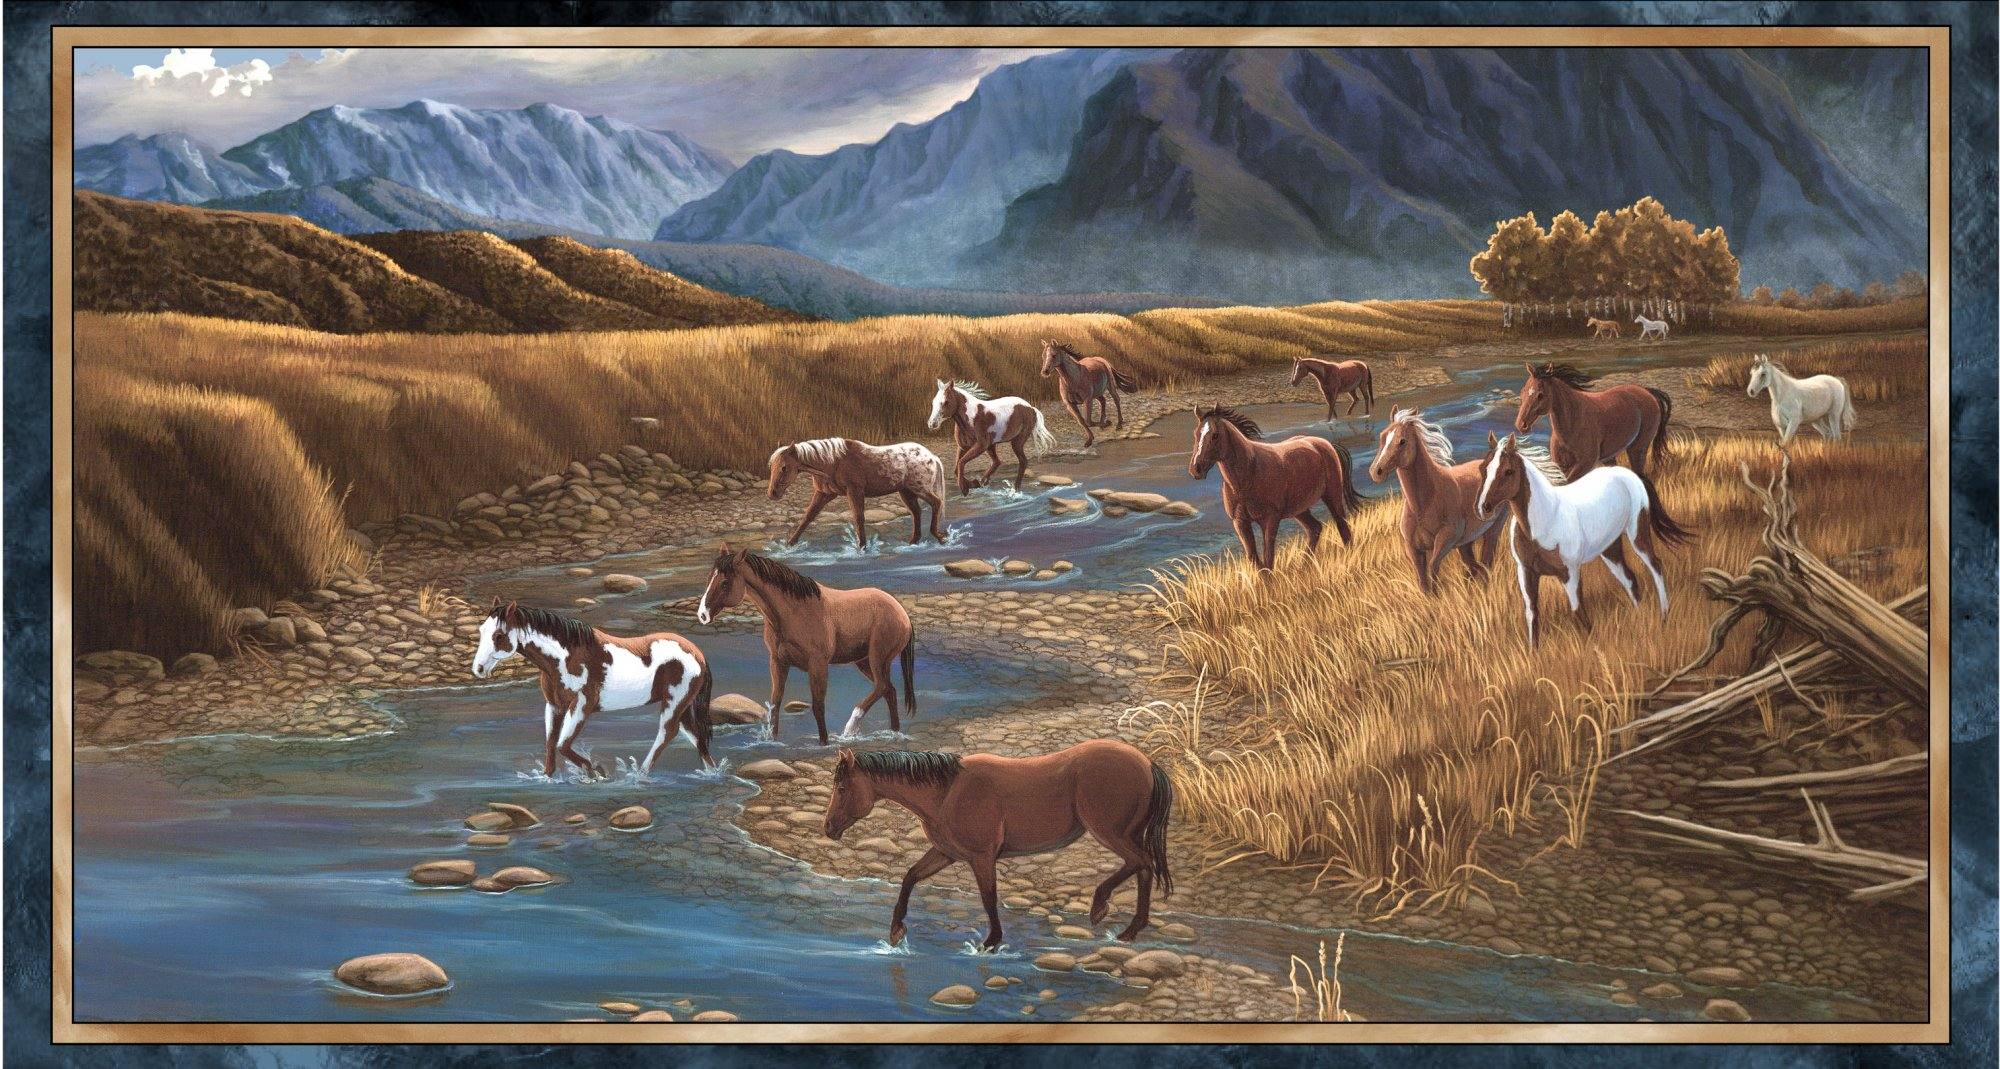 Sundance - Mountain Horse Panel (24) - Multi